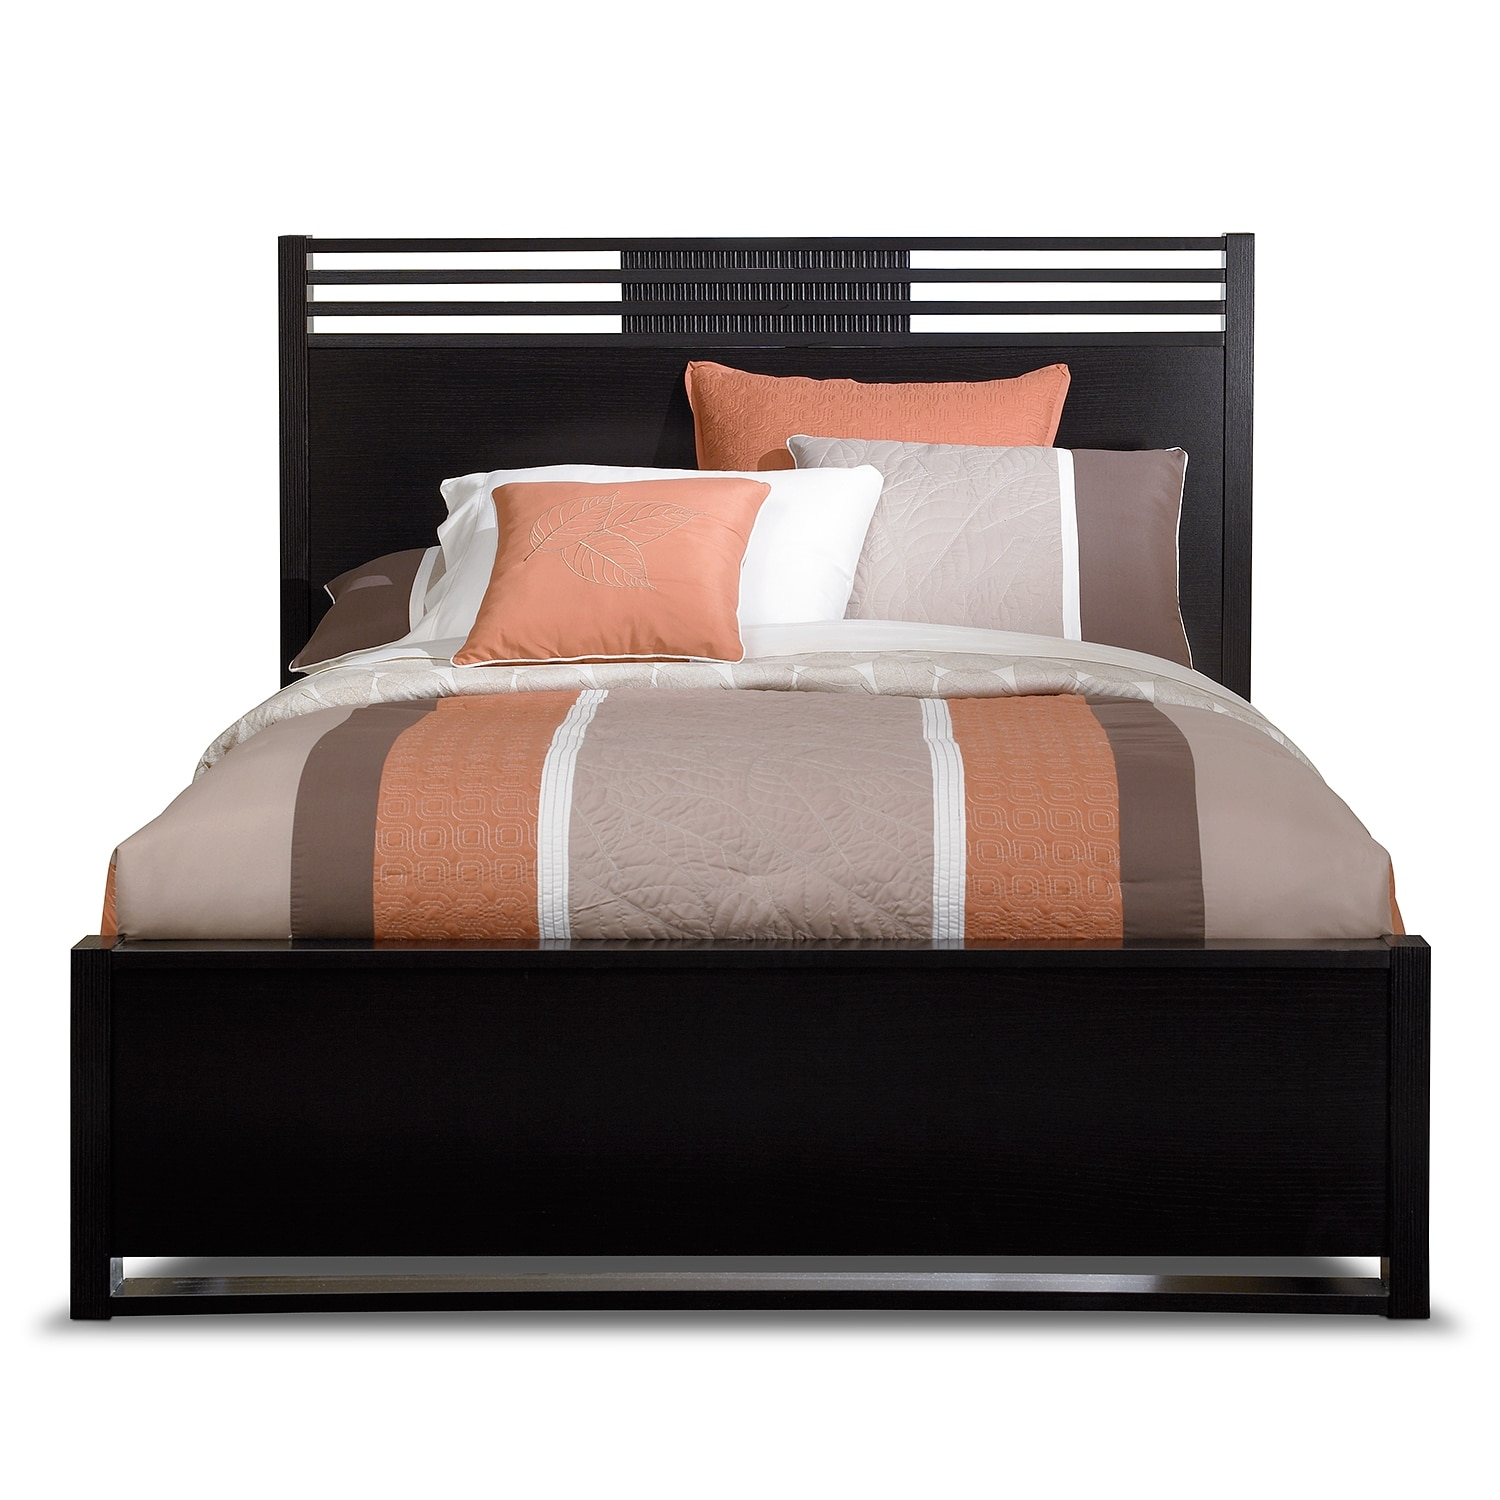 Black queen beds weston queen storage bed cavallino for American signature furniture locations pa